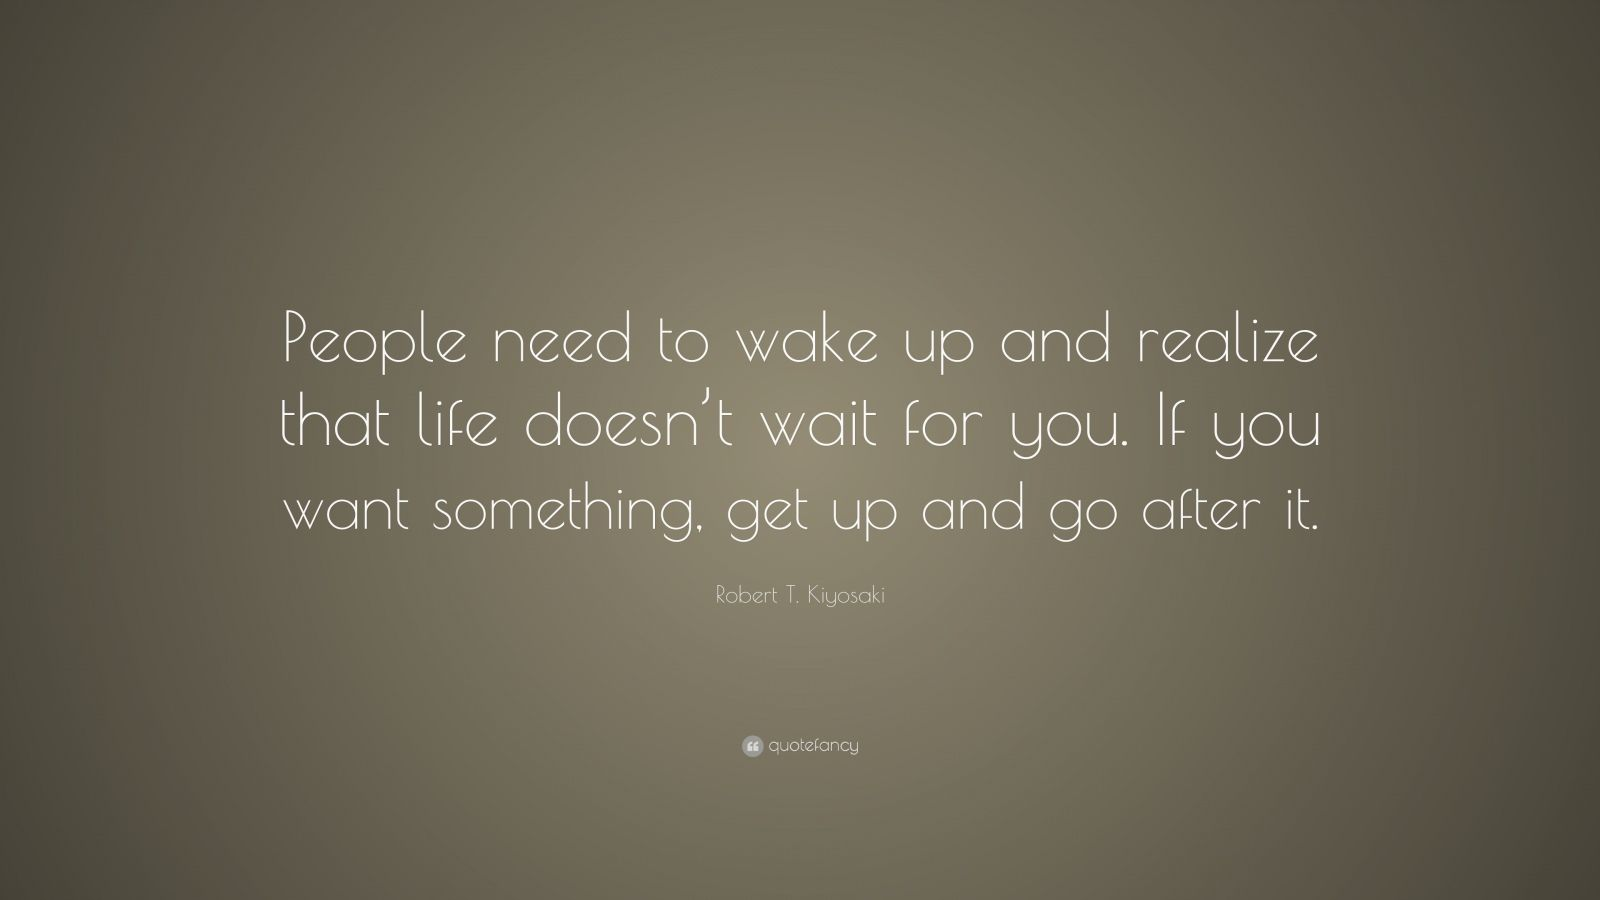 """Robert T. Kiyosaki Quote: """"People need to wake up and realize that life doesn't wait for you. If you want something, get up and go after it."""""""